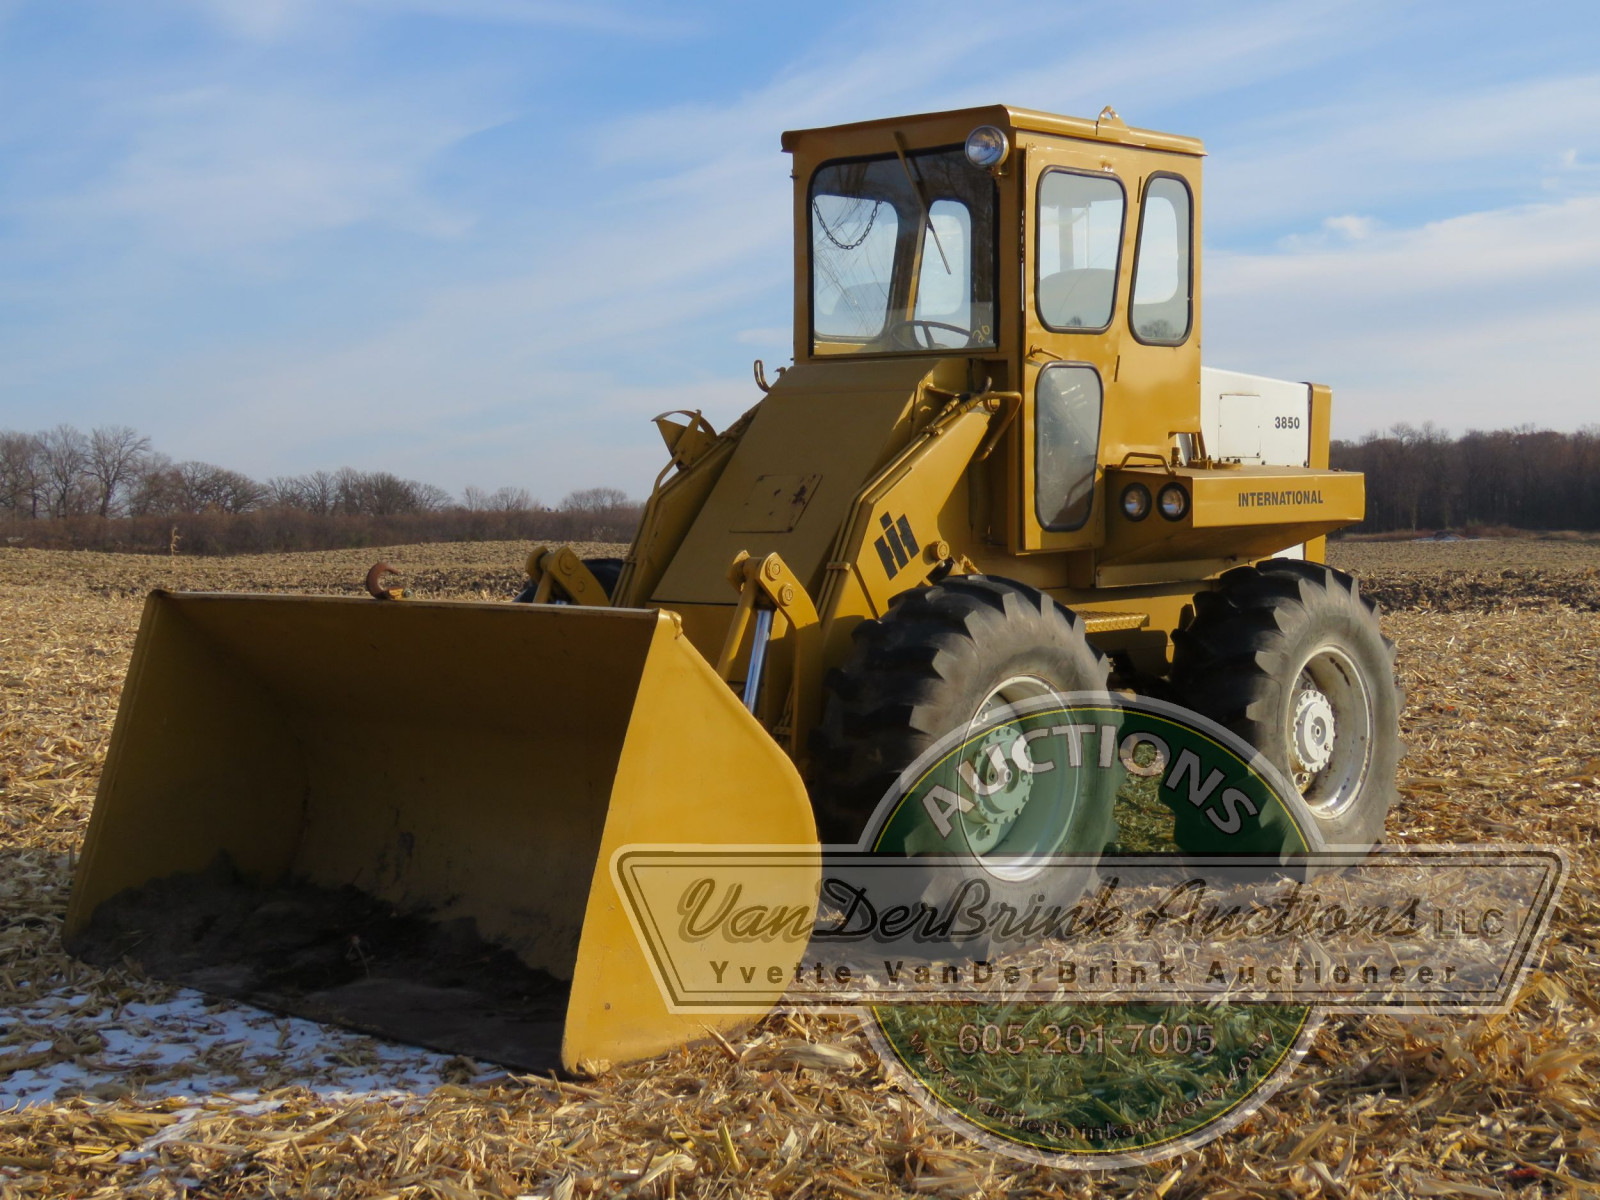 International 3850 Payloader - Image 18